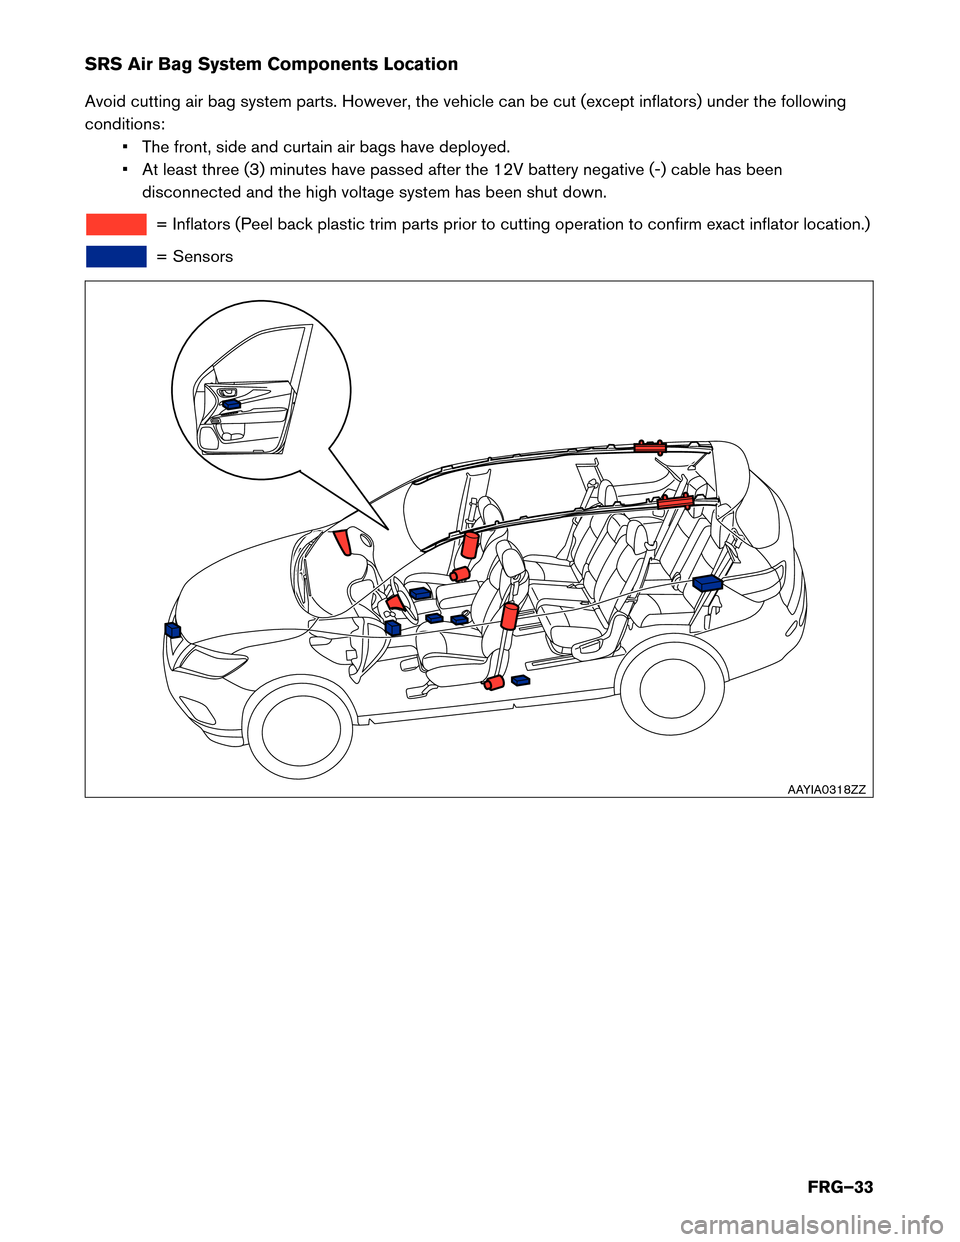 NISSAN PATHFINDER HYBRID 2014 R52 / 4.G First Responders Guide, Page 33